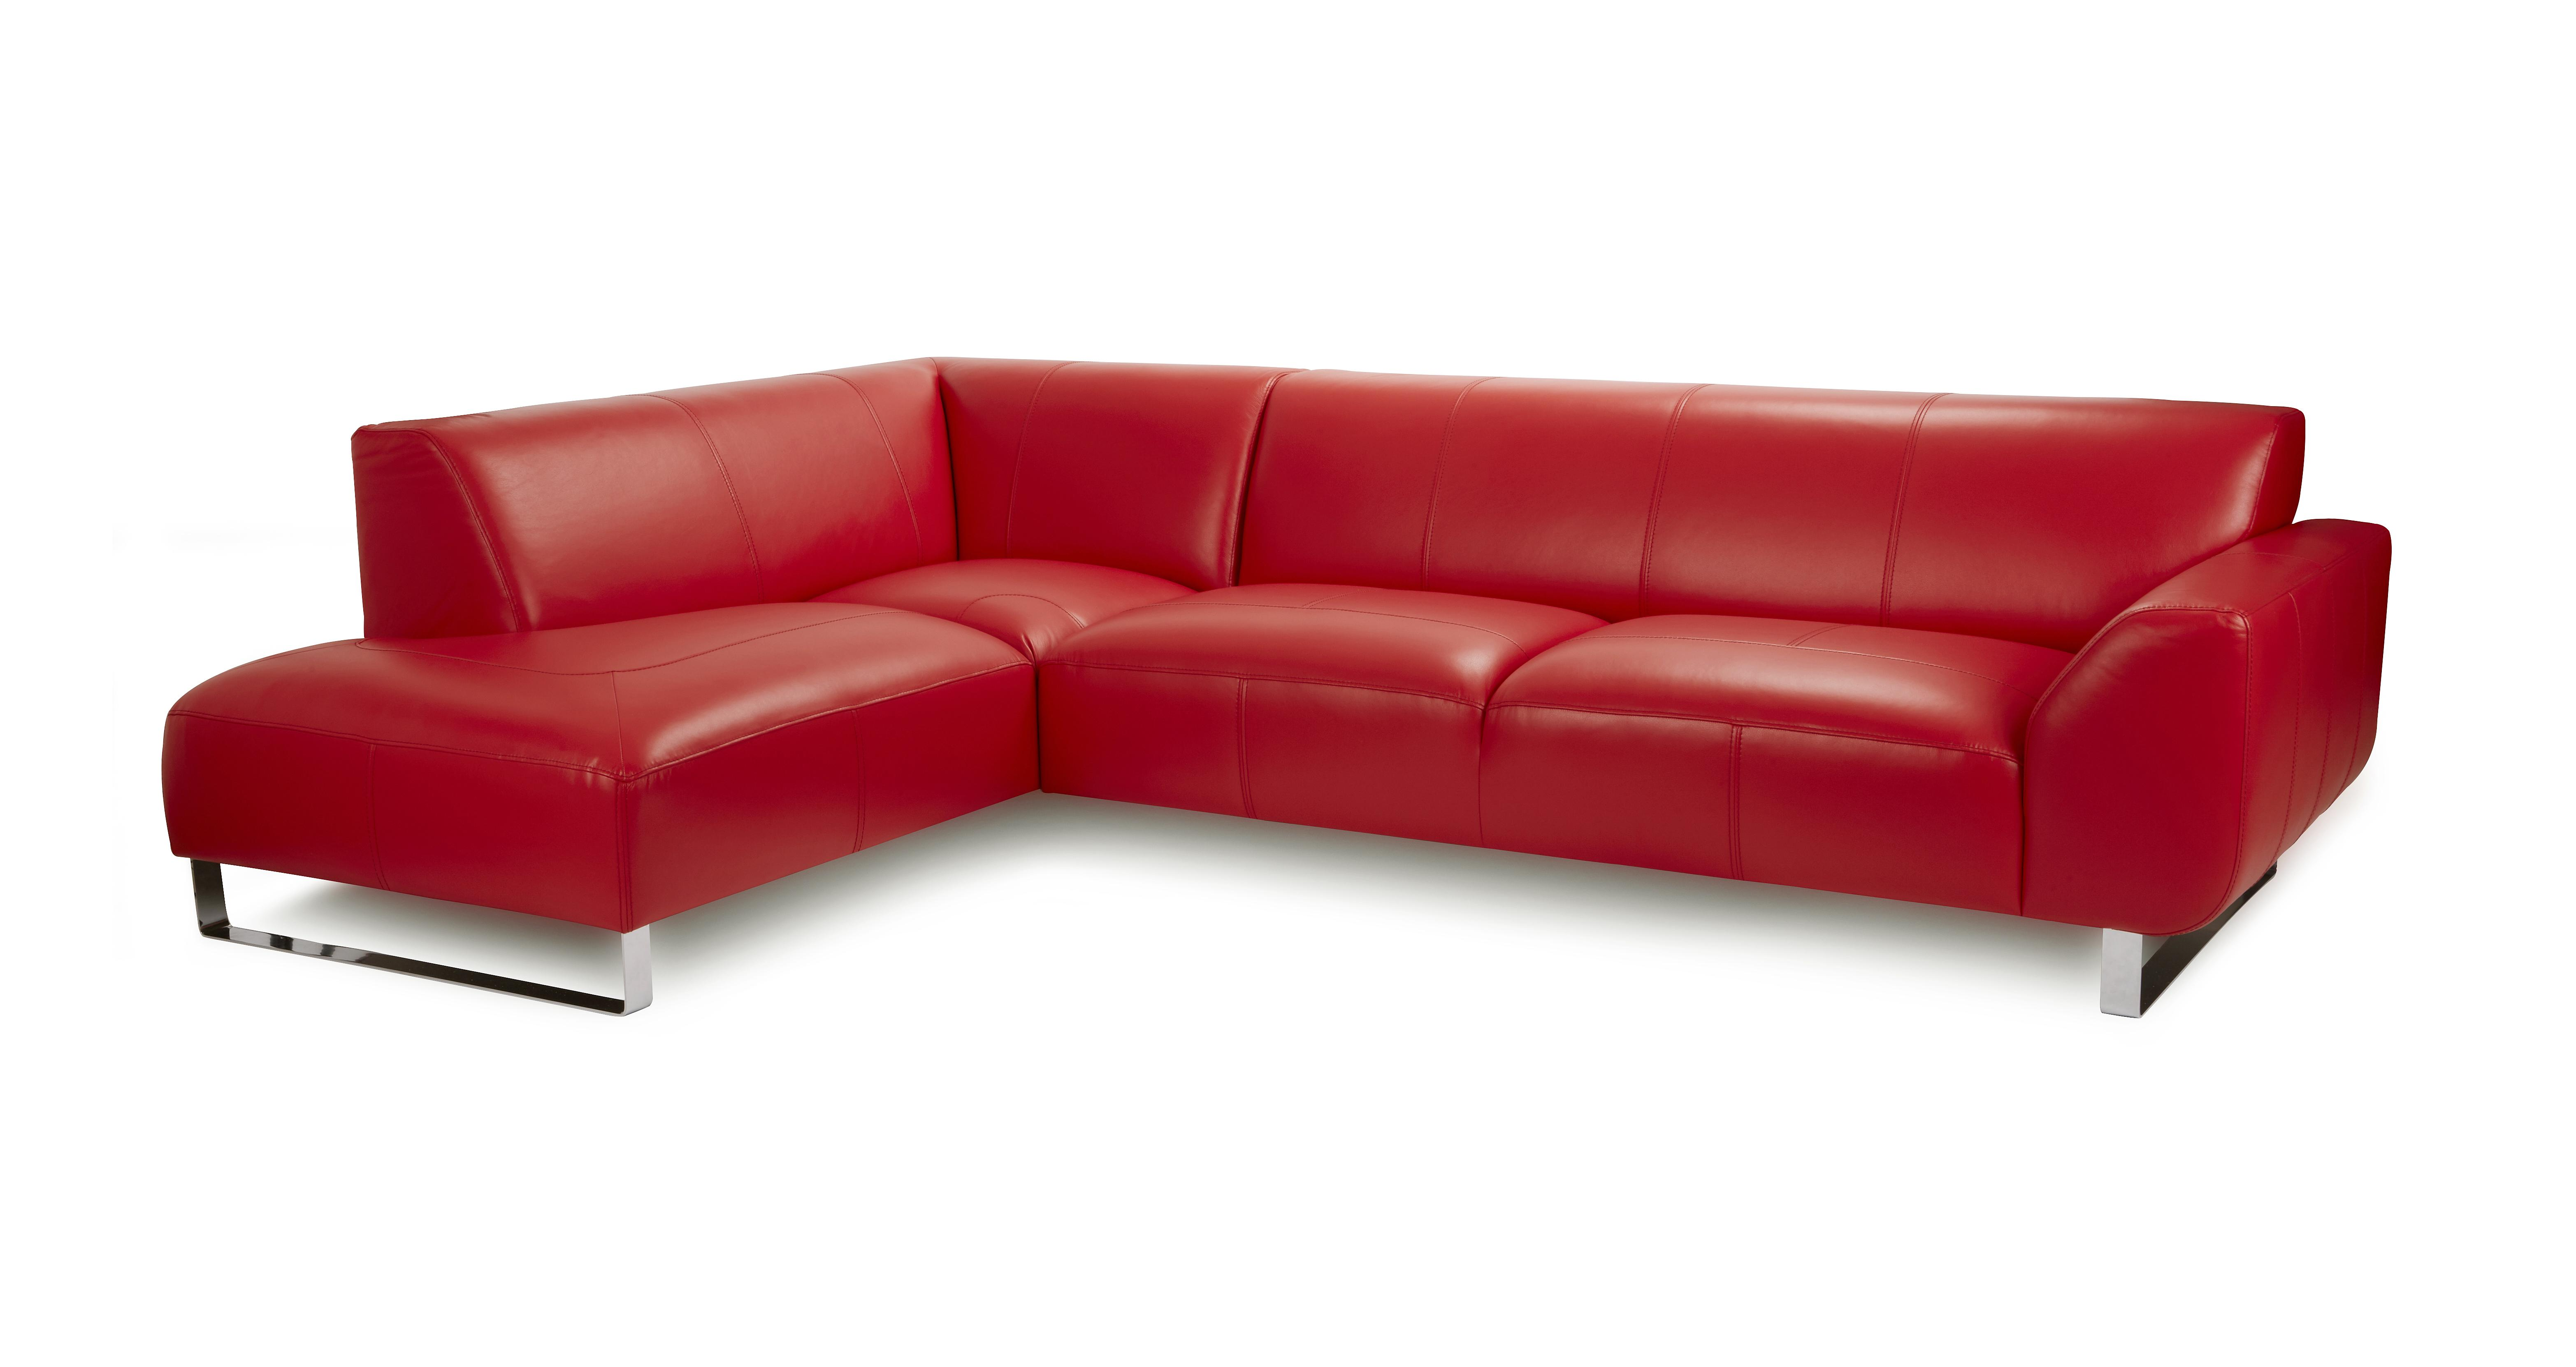 Groovy Hardy Leather 3 Seater Sofa Download Free Architecture Designs Philgrimeyleaguecom